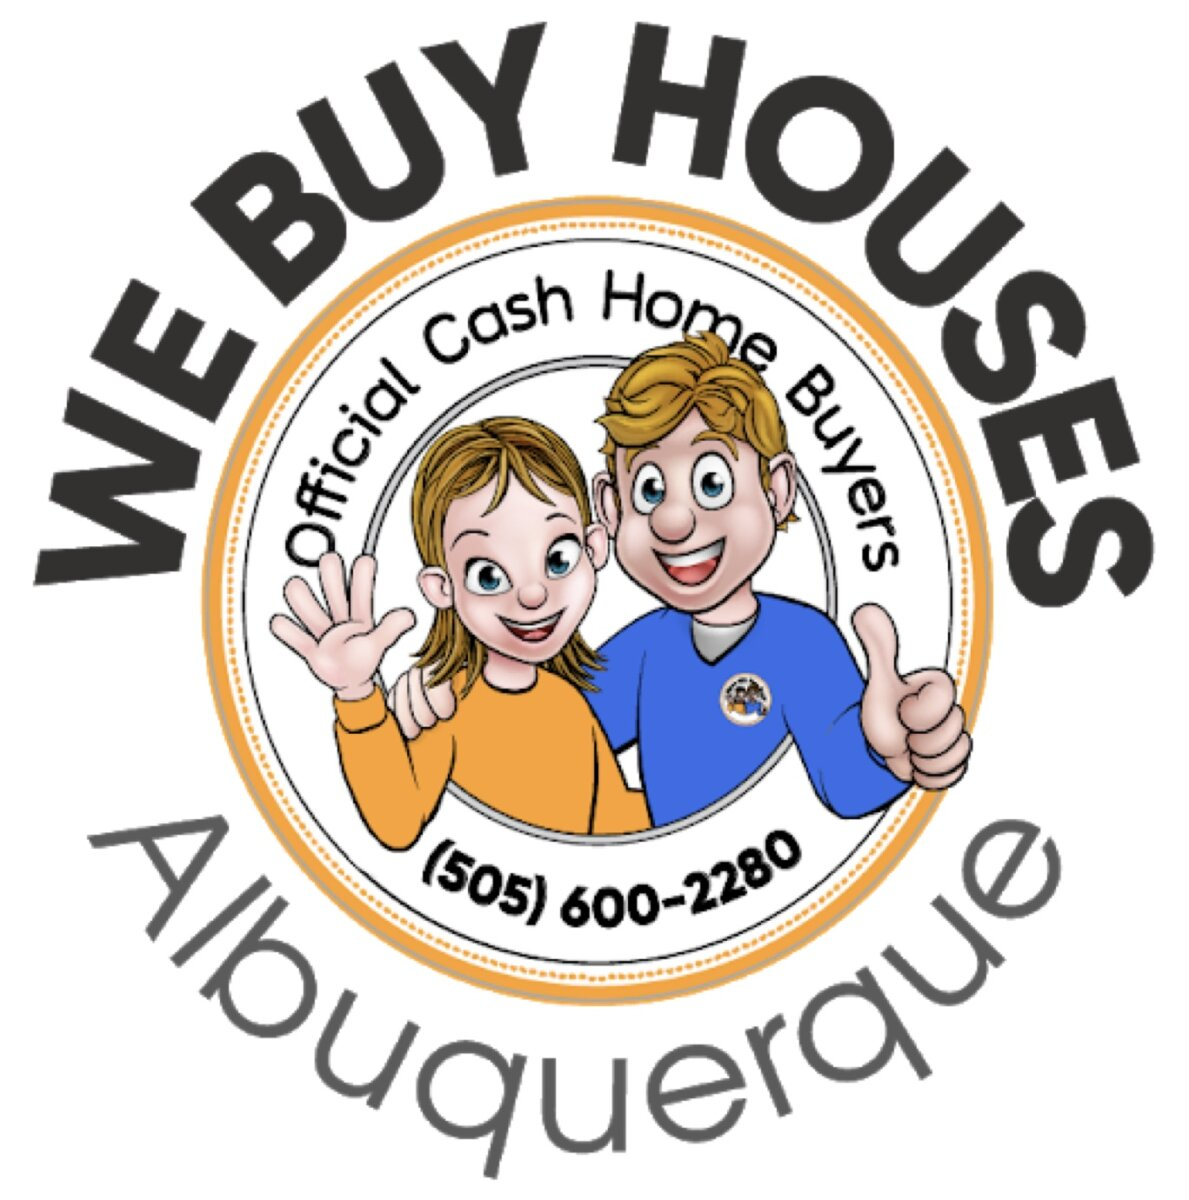 We Buy Houses Albuquerque logo